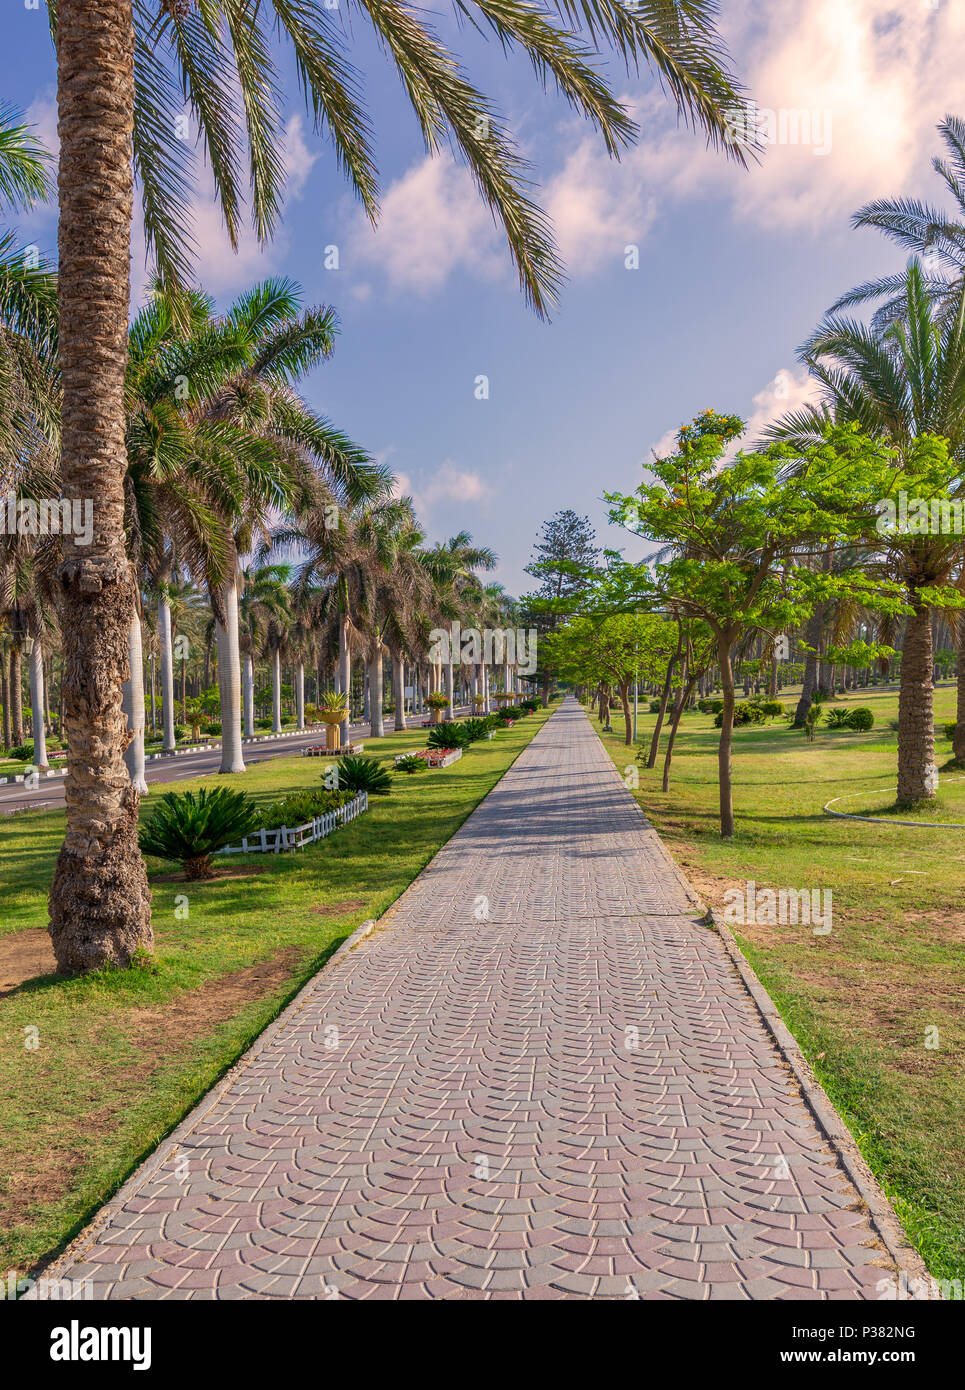 Pedestrian walkway framed with trees and palm trees on both sides with partly cloudy sky in a summer day, Montaza public park, Alexandria, Egypt - Stock Image